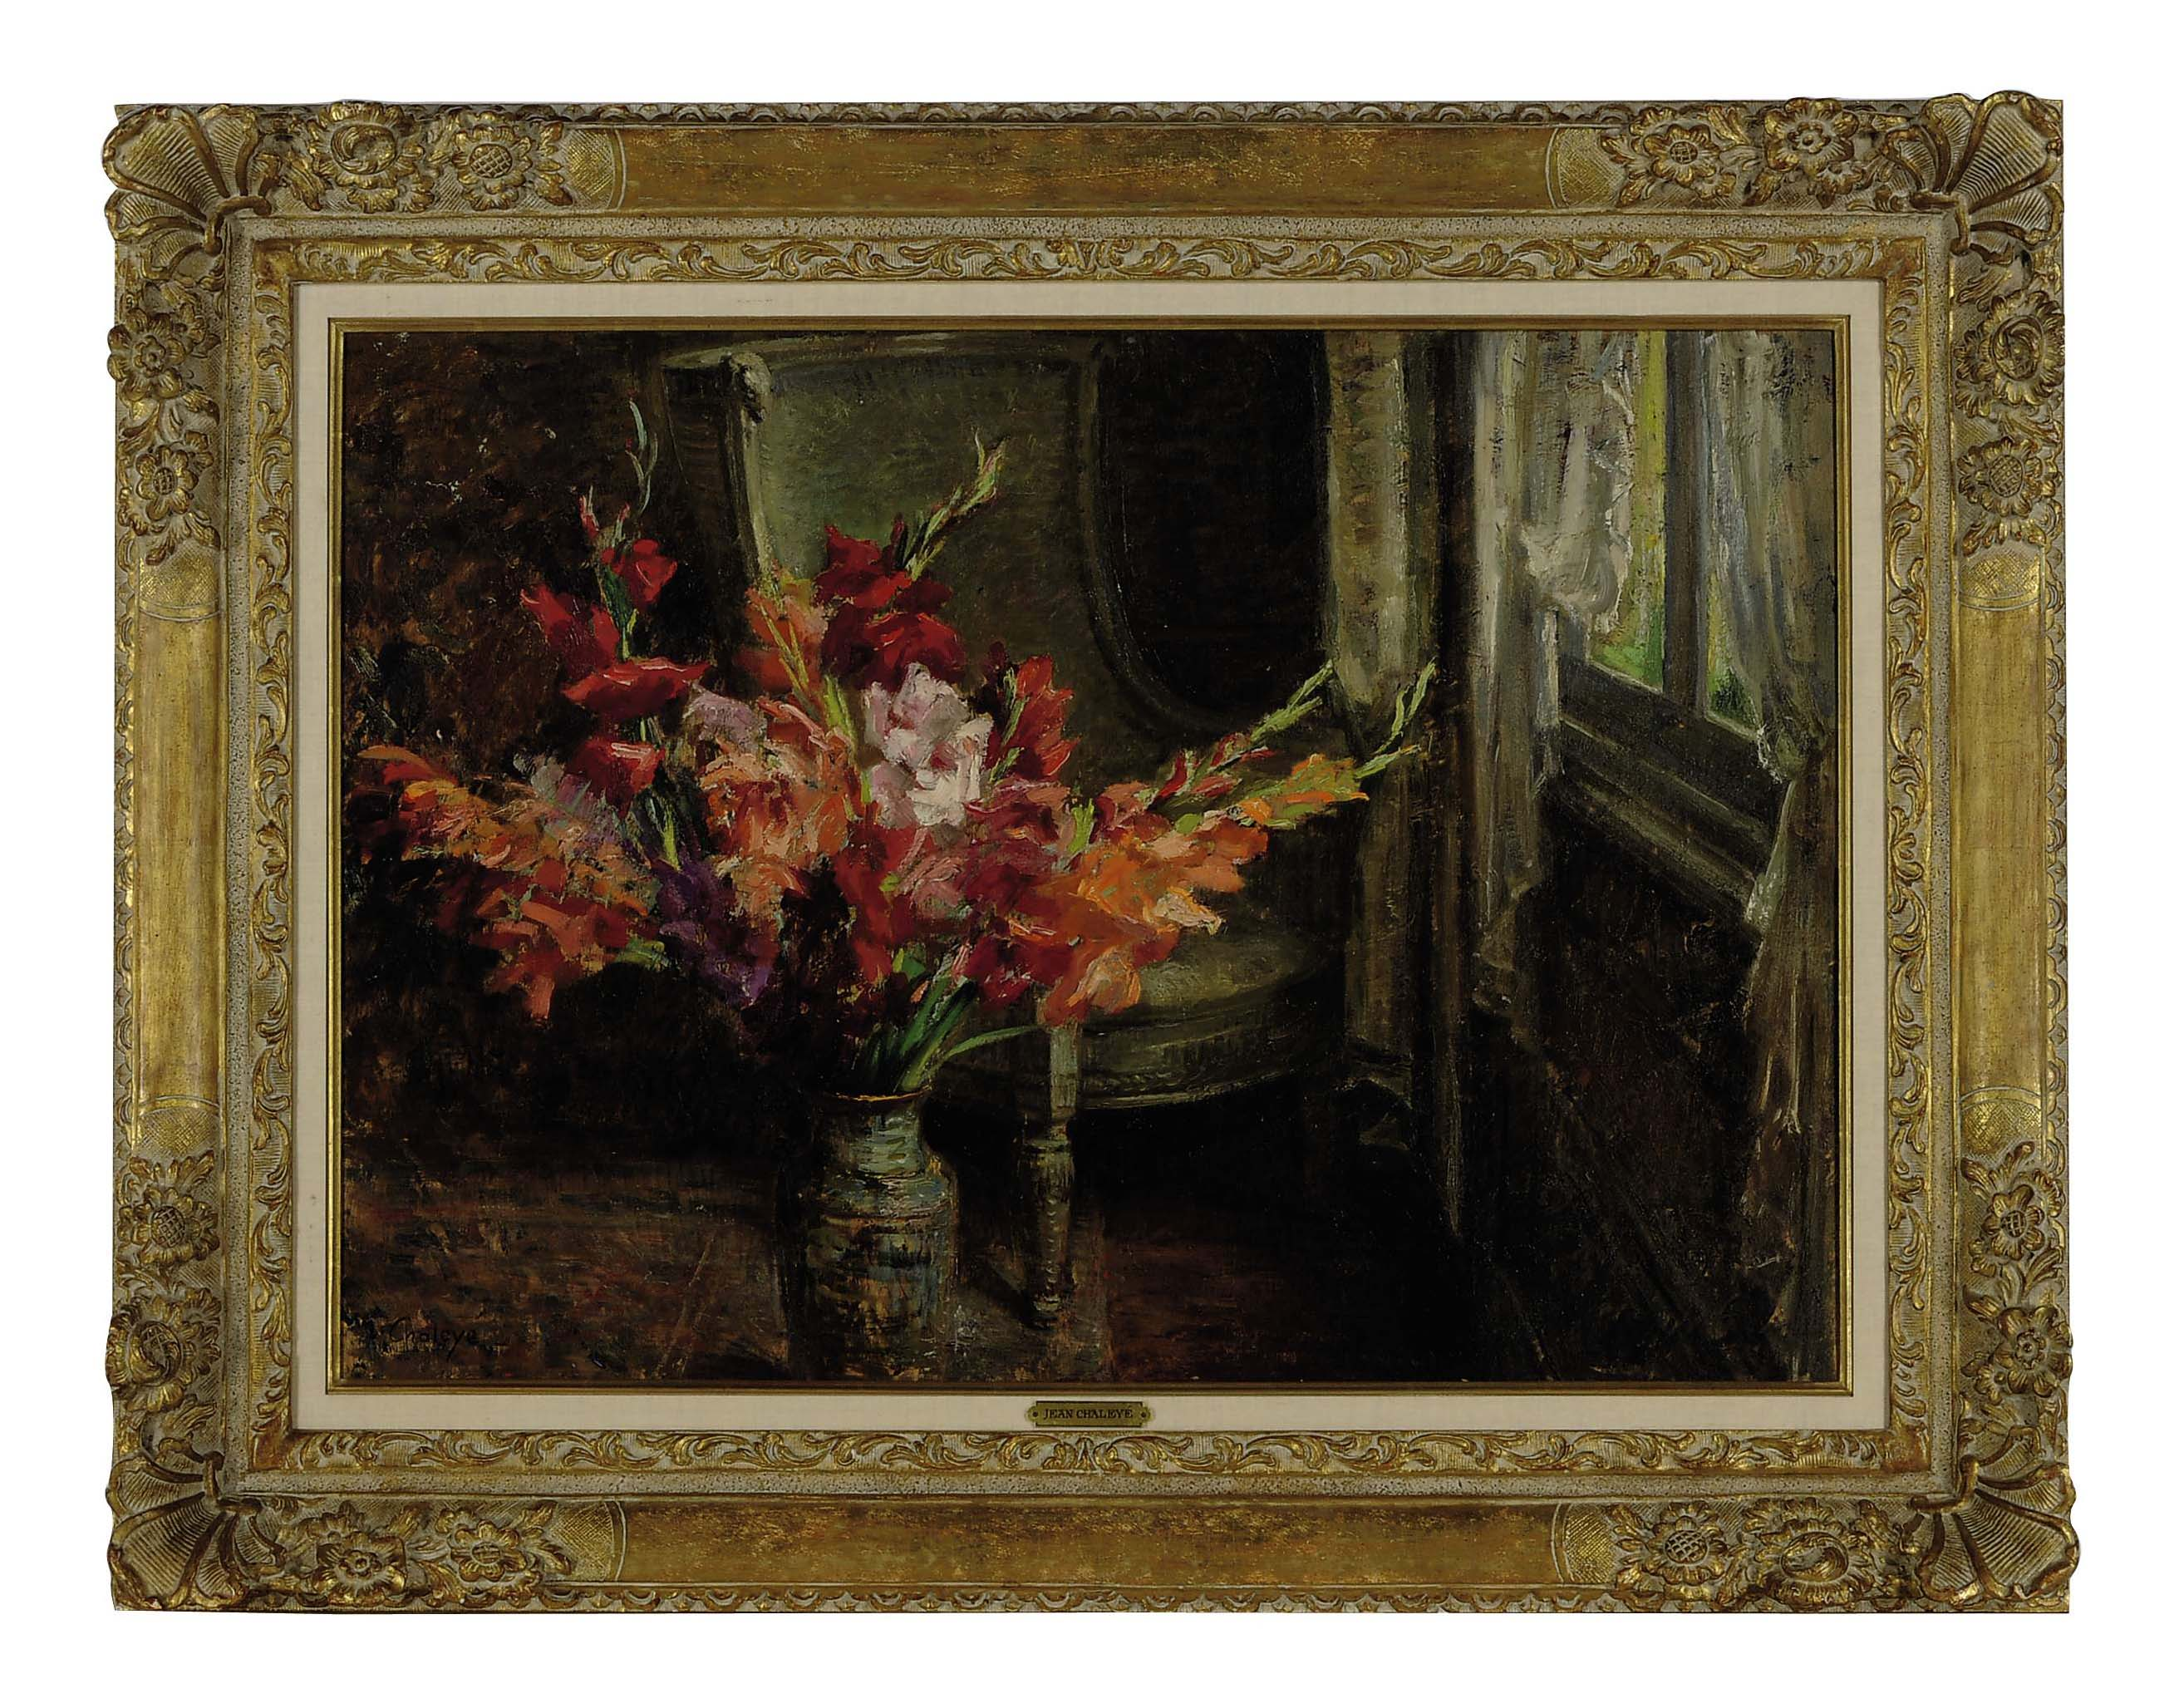 Still life of flowers in a porcelain vase by a window